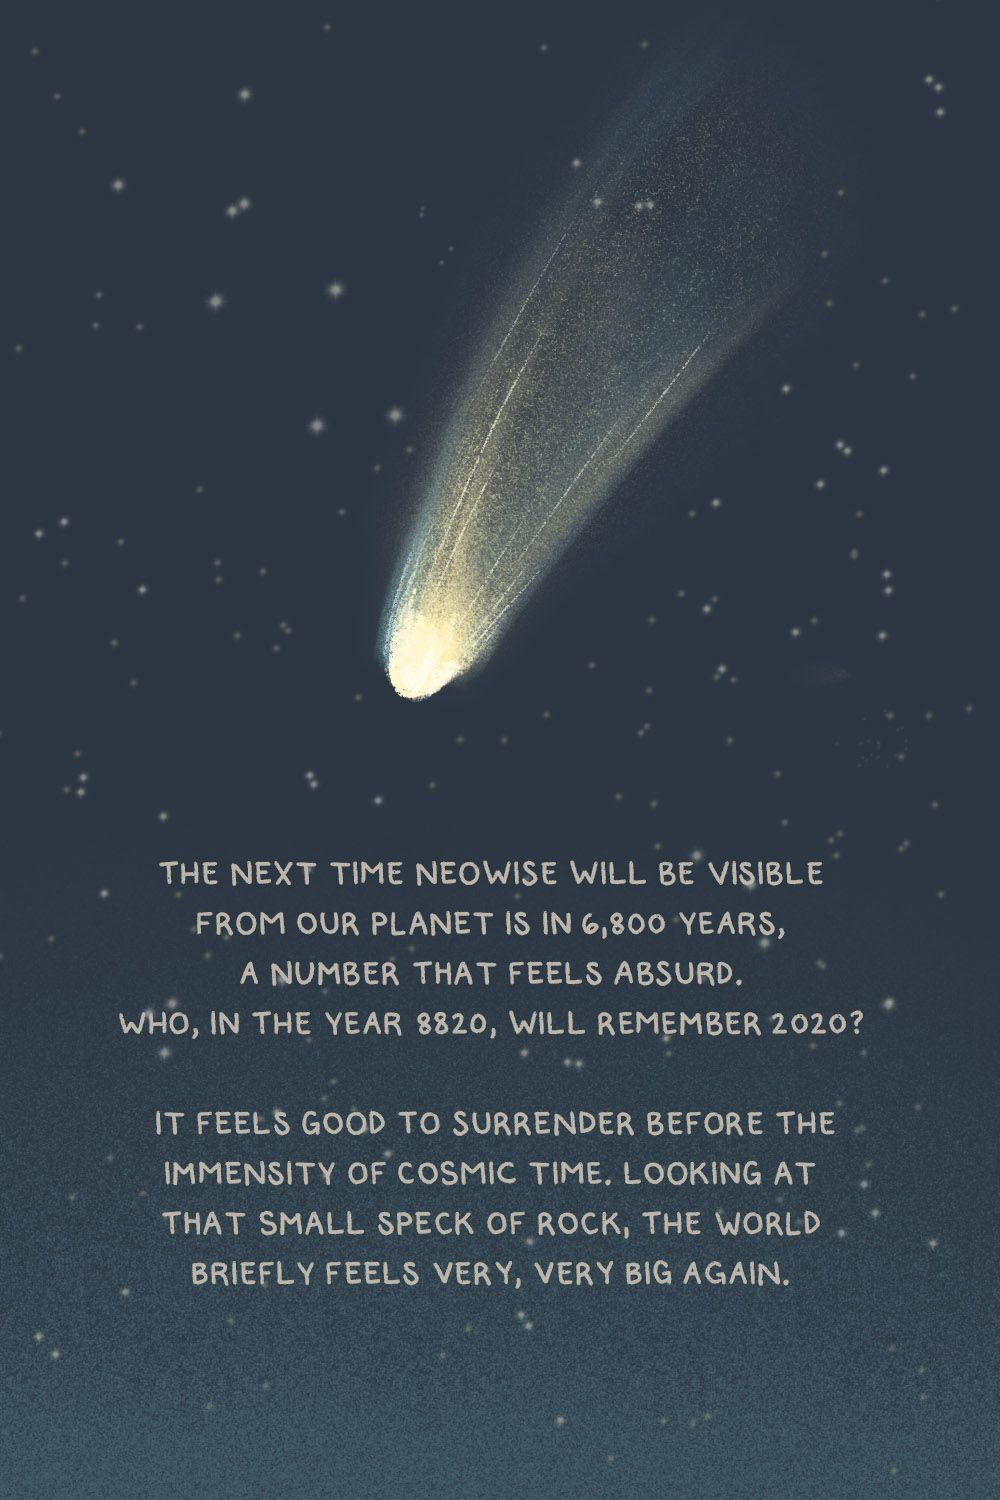 The next time neowise will be visible from our planet is in 6.800 years, a number that feels absurd. Who, in the year 8820, will remember 2020? It feels good to surrender before the immensity of cosmic time. Looking at that small speck of rock, the world briefly feels very, very big again.